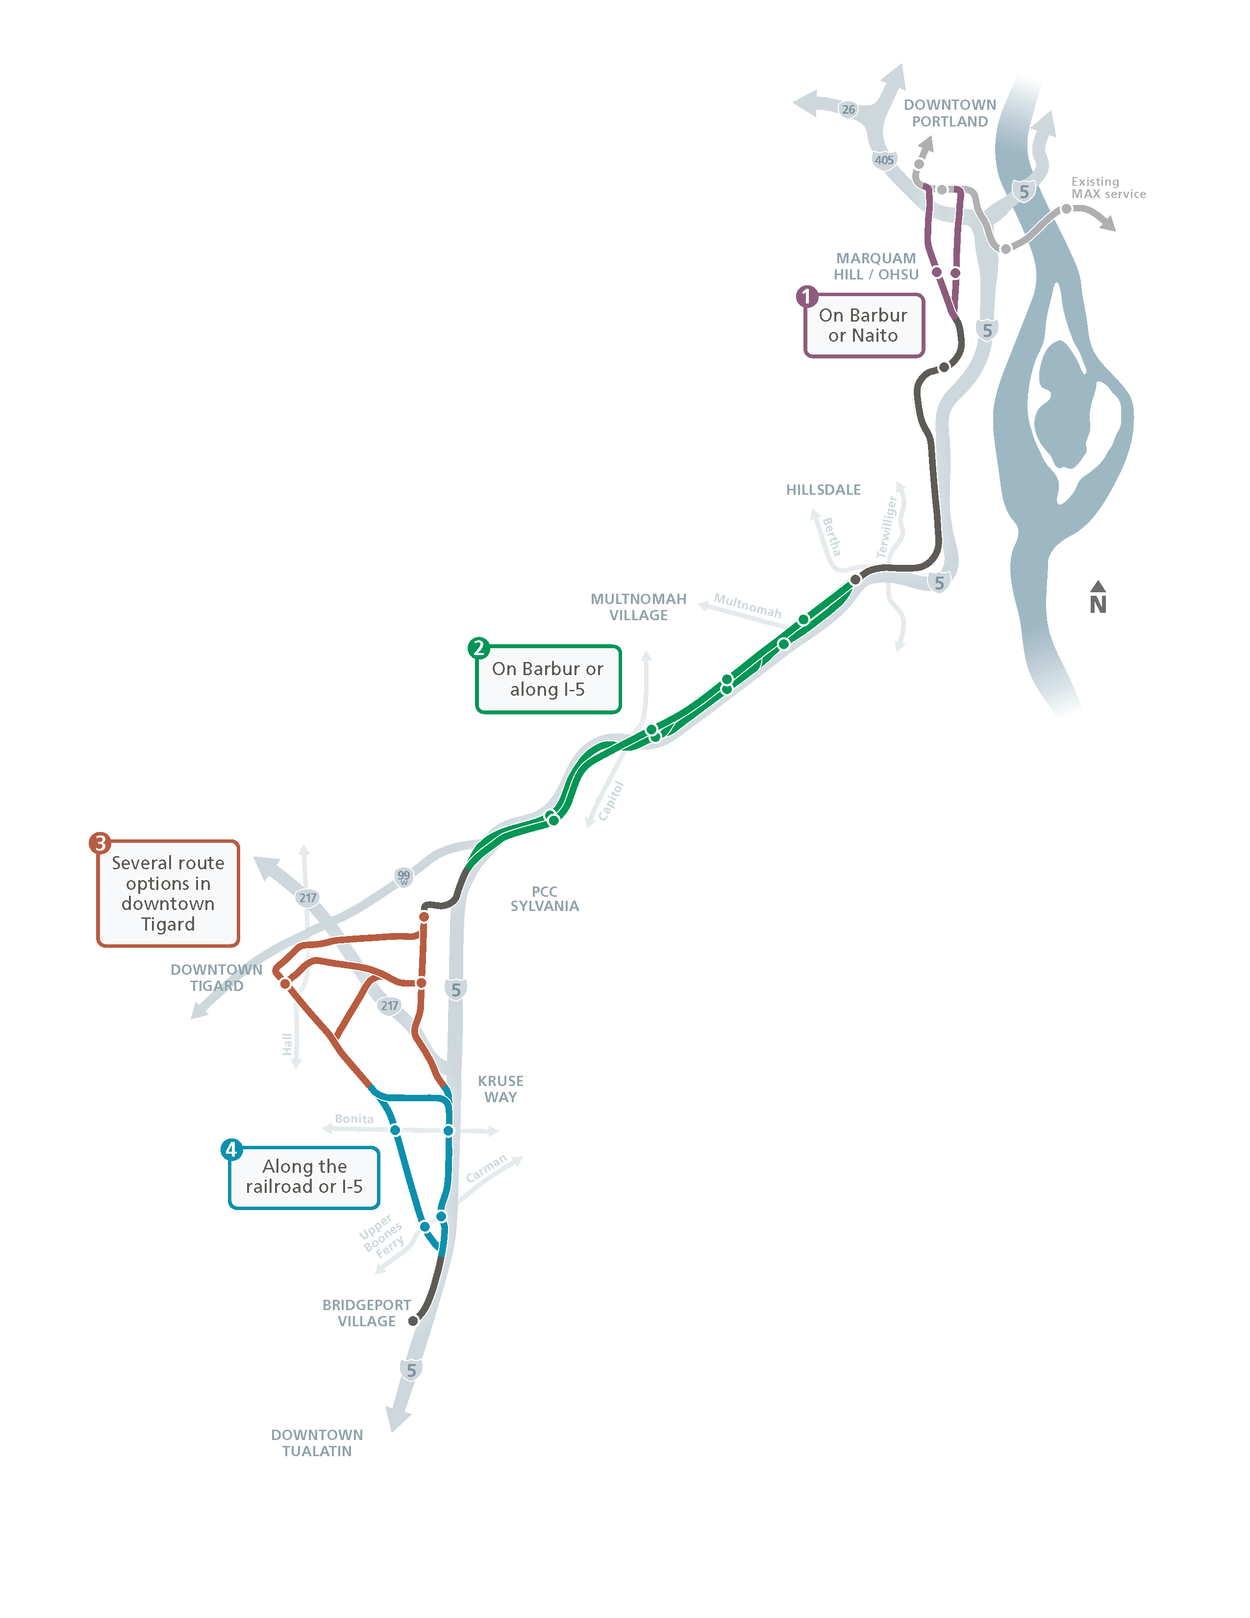 SW Corridor route map options as of March 20, 2017